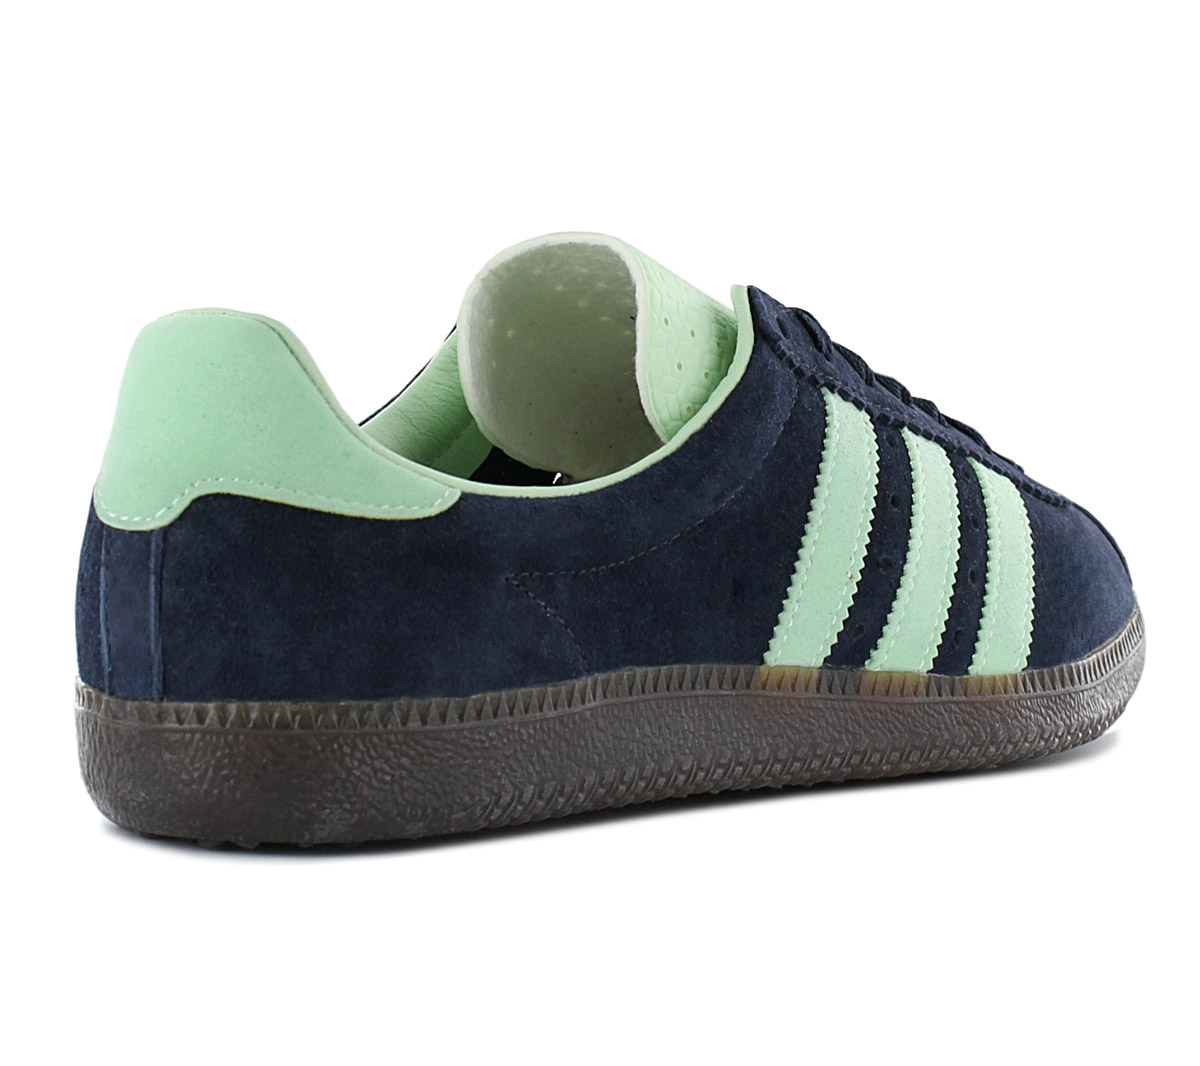 Details about Adidas Originals Padiham Special Men's Sneaker AC7747 Retro Shoes Sneakers